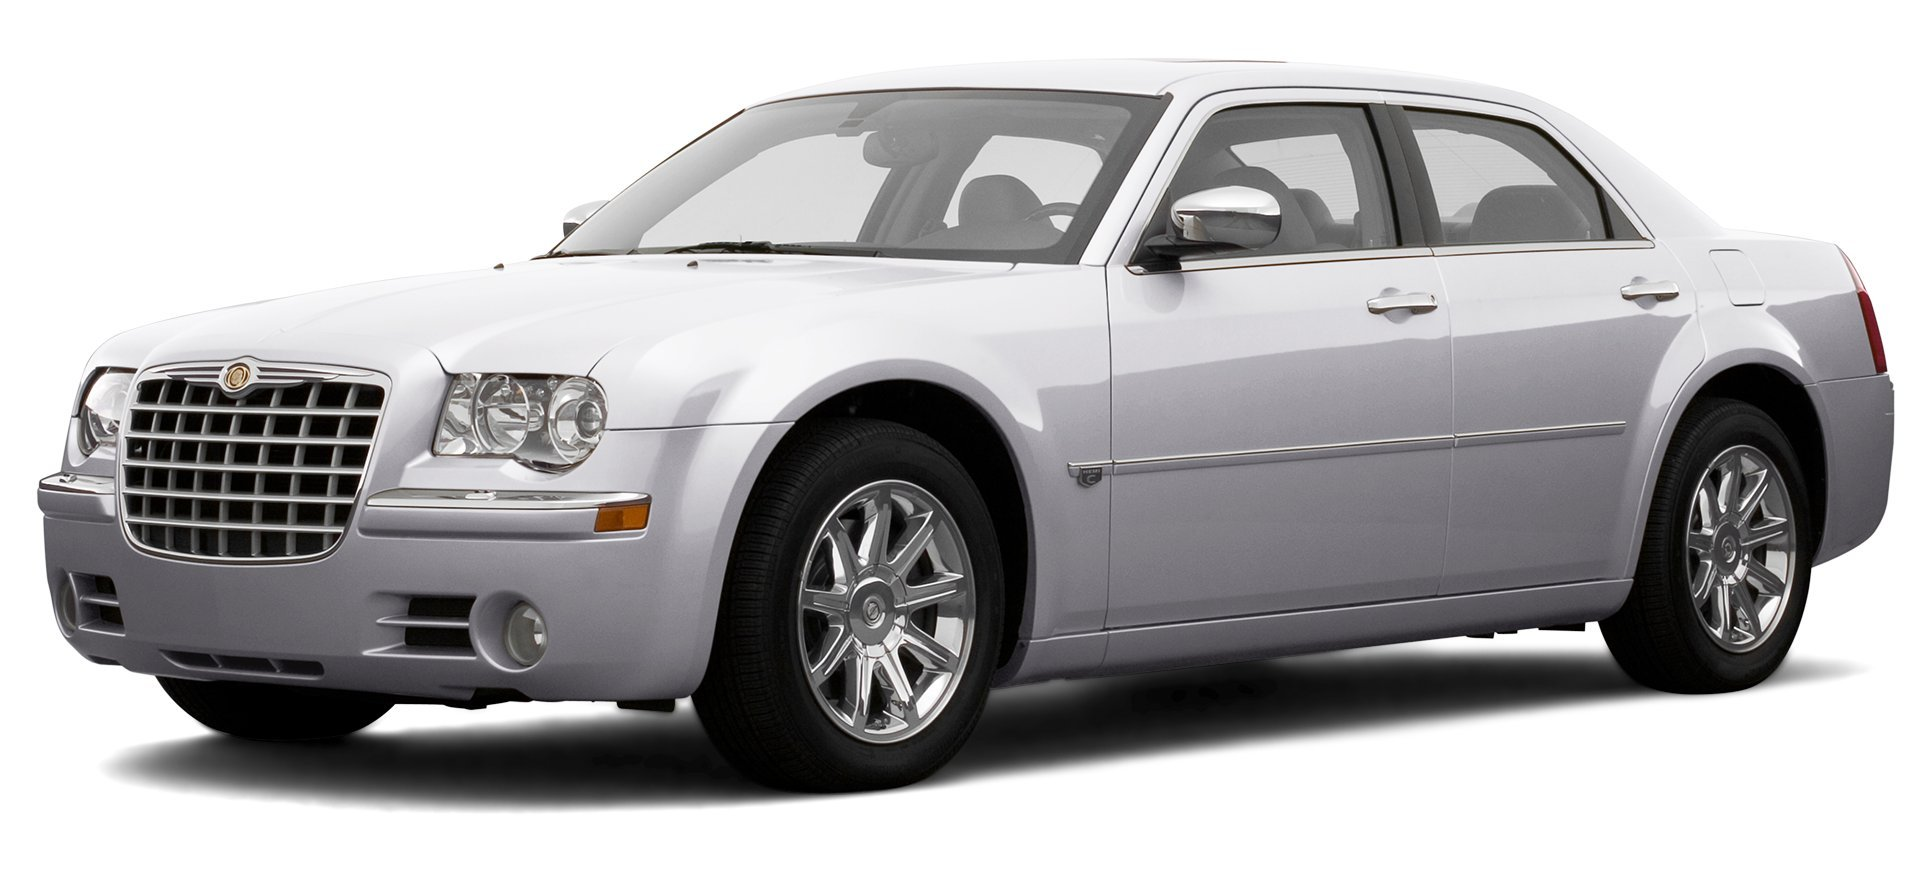 2007 chrysler 300 reviews images and specs - 2007 chrysler 300 custom interior ...